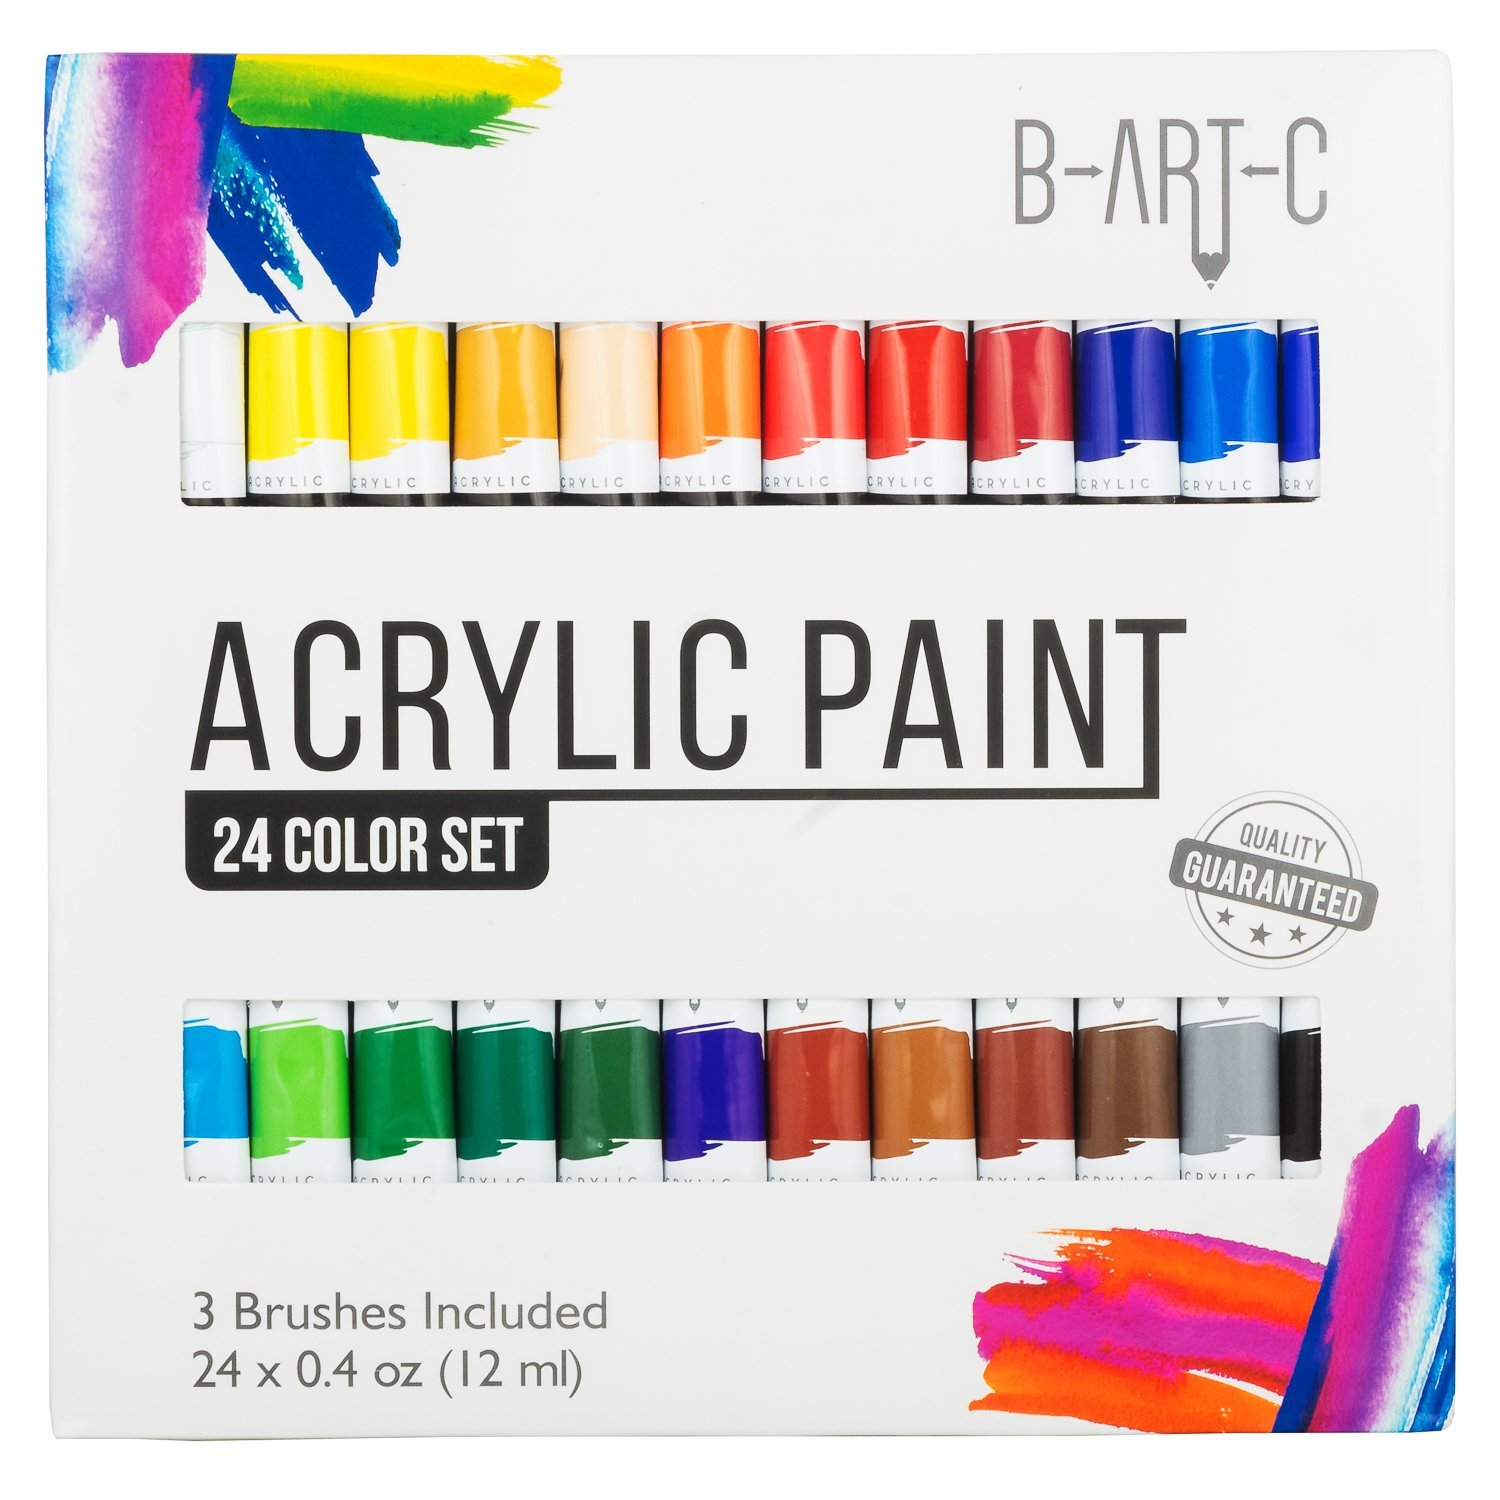 Acrylic Paint Set - B-Art-C 24 Vibrant Color Paint Kit includes 3 Paint Brushes -Non Toxic Paint for Canvas, Fabric, Glass, Nail Art, Rock Painting, Arts and Crafts for Girls & Boys by B-ART-C